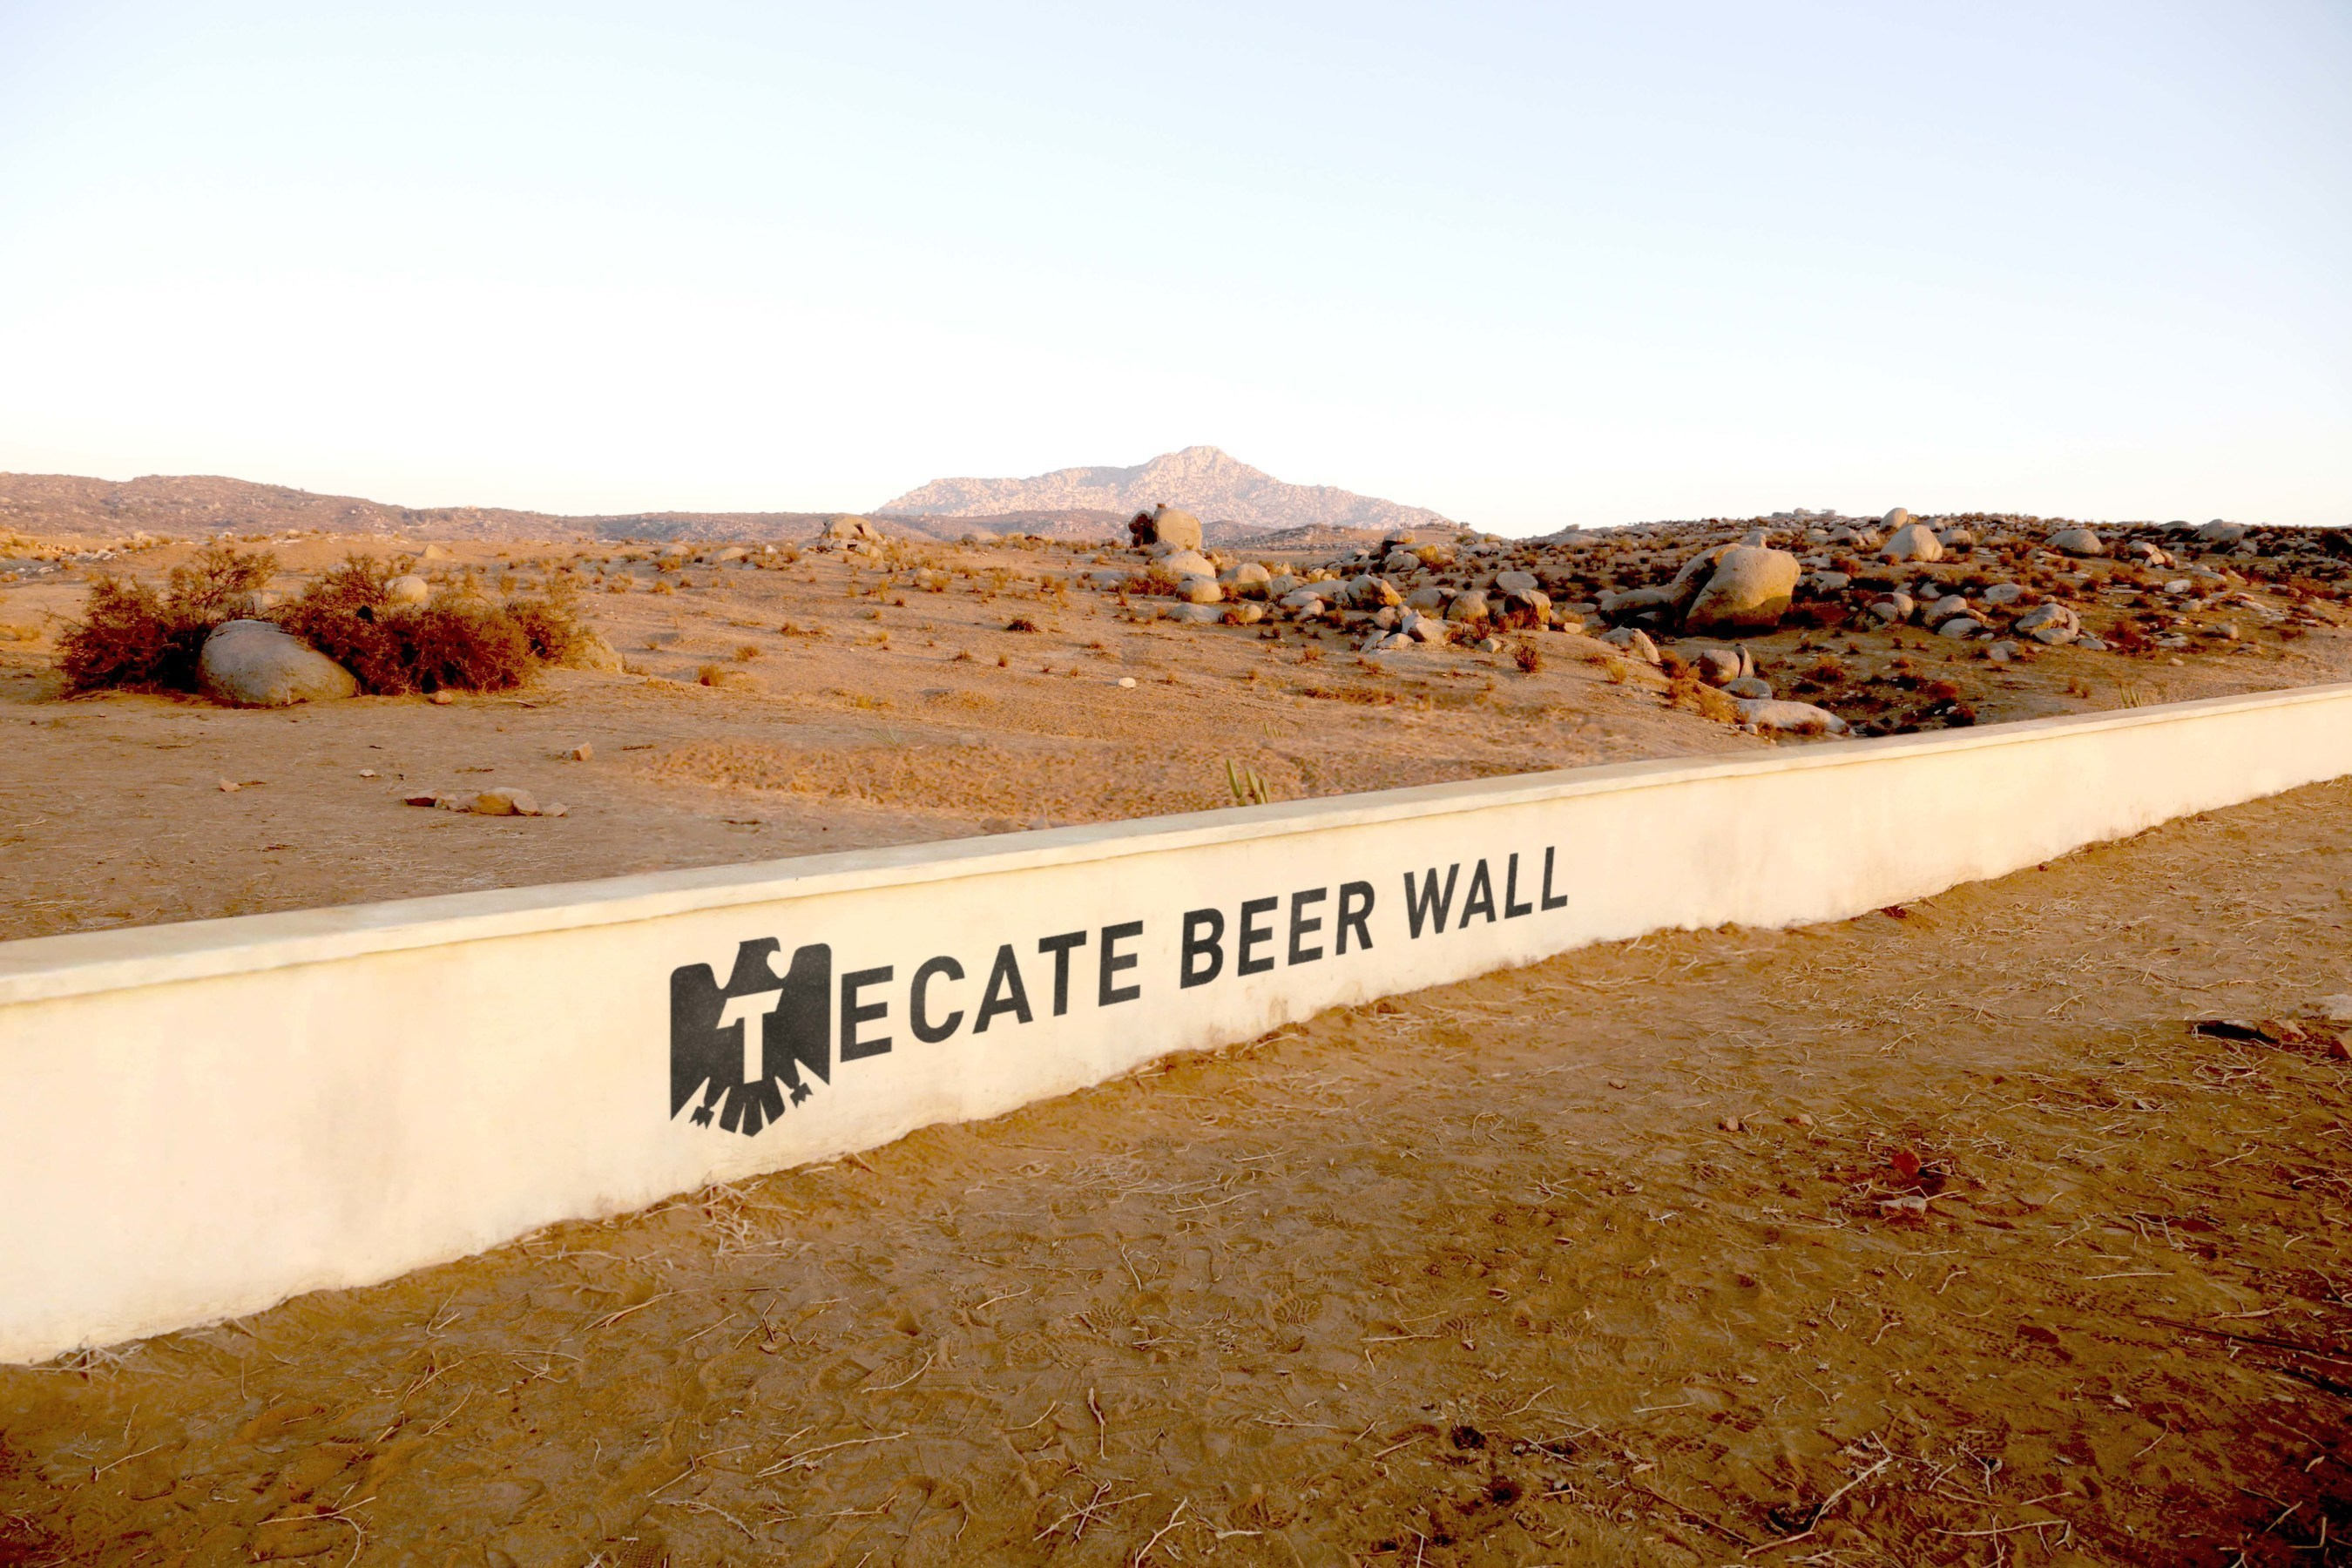 Tecate Light Builds A Wall To Unify, Not Divide In Tonight's Bold Commercial Premiering Nationally Surrounding The First Presidential Debate